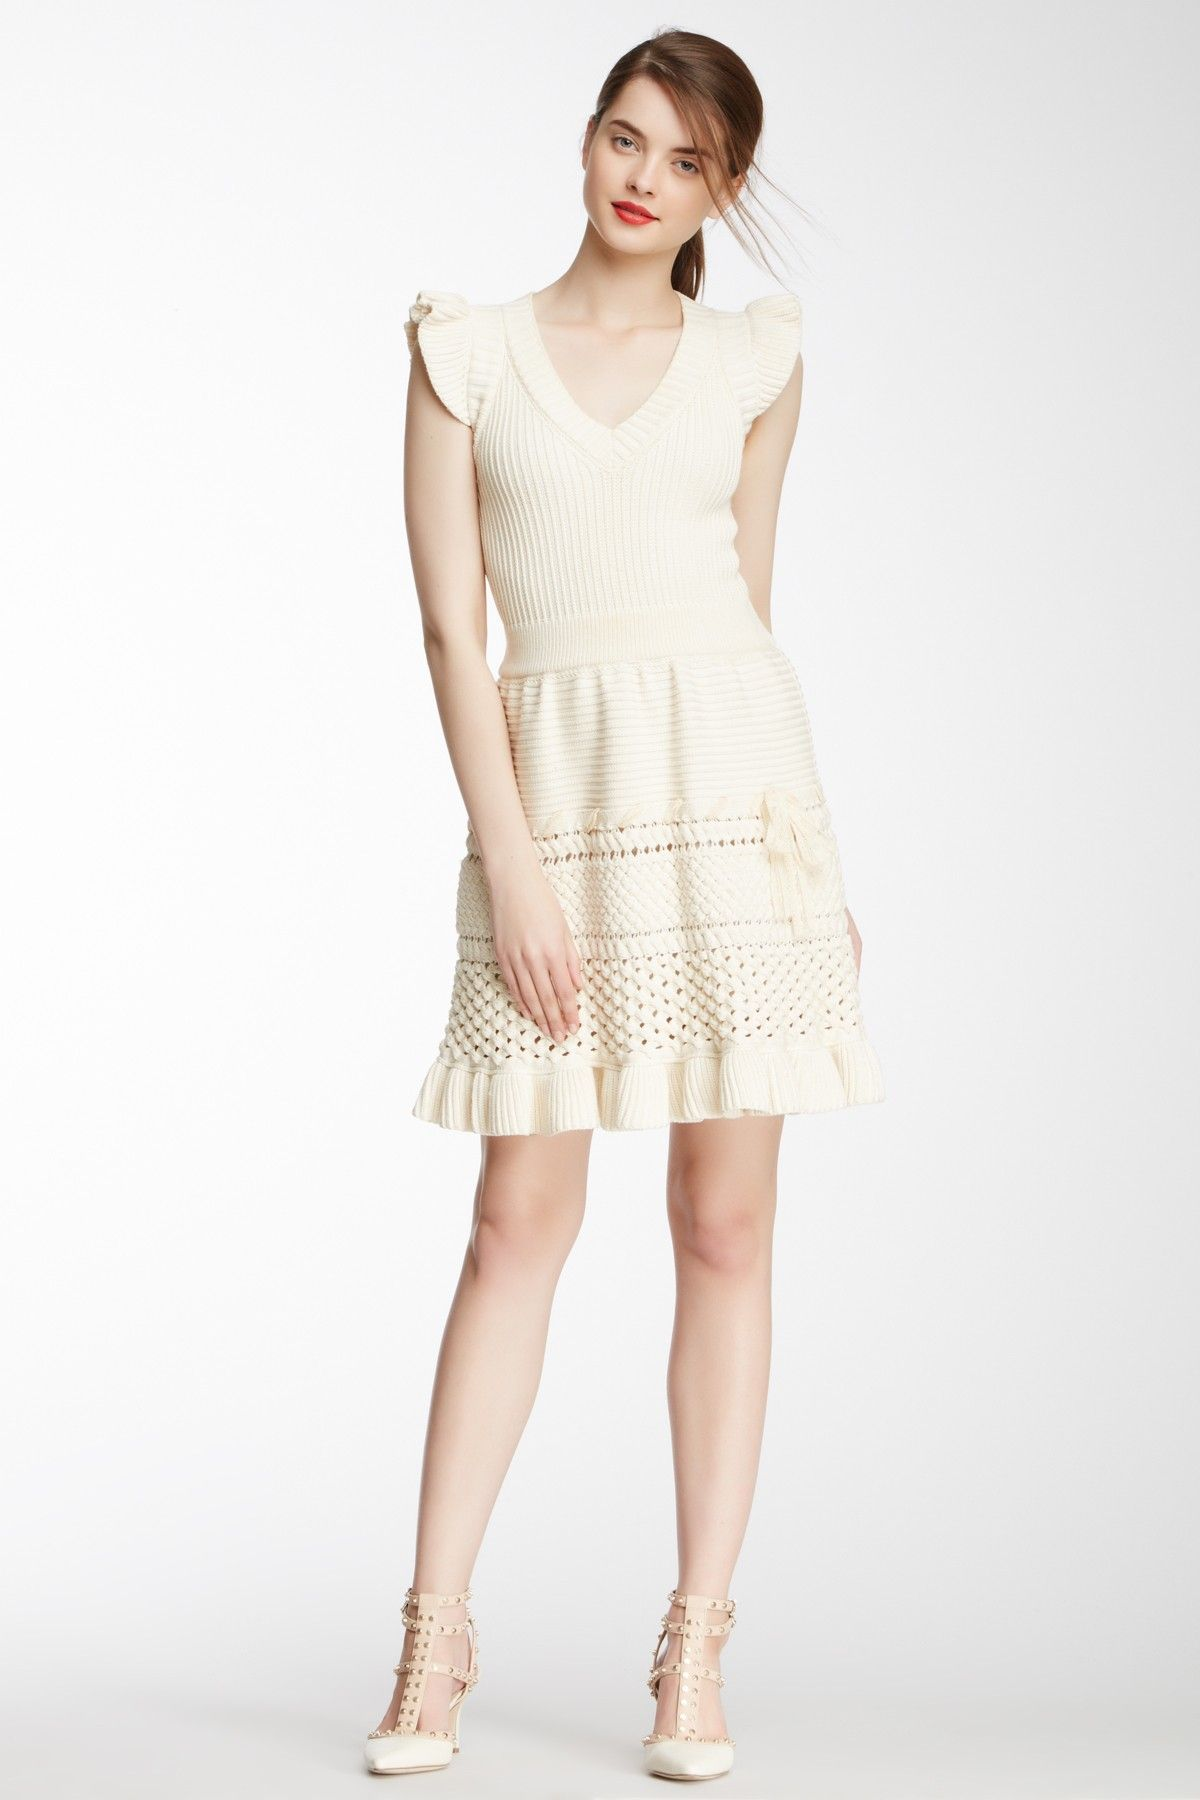 red valentino chunky knit tennis dress pascale de groof style red valentino chunky knit tennis dress pascale de groof